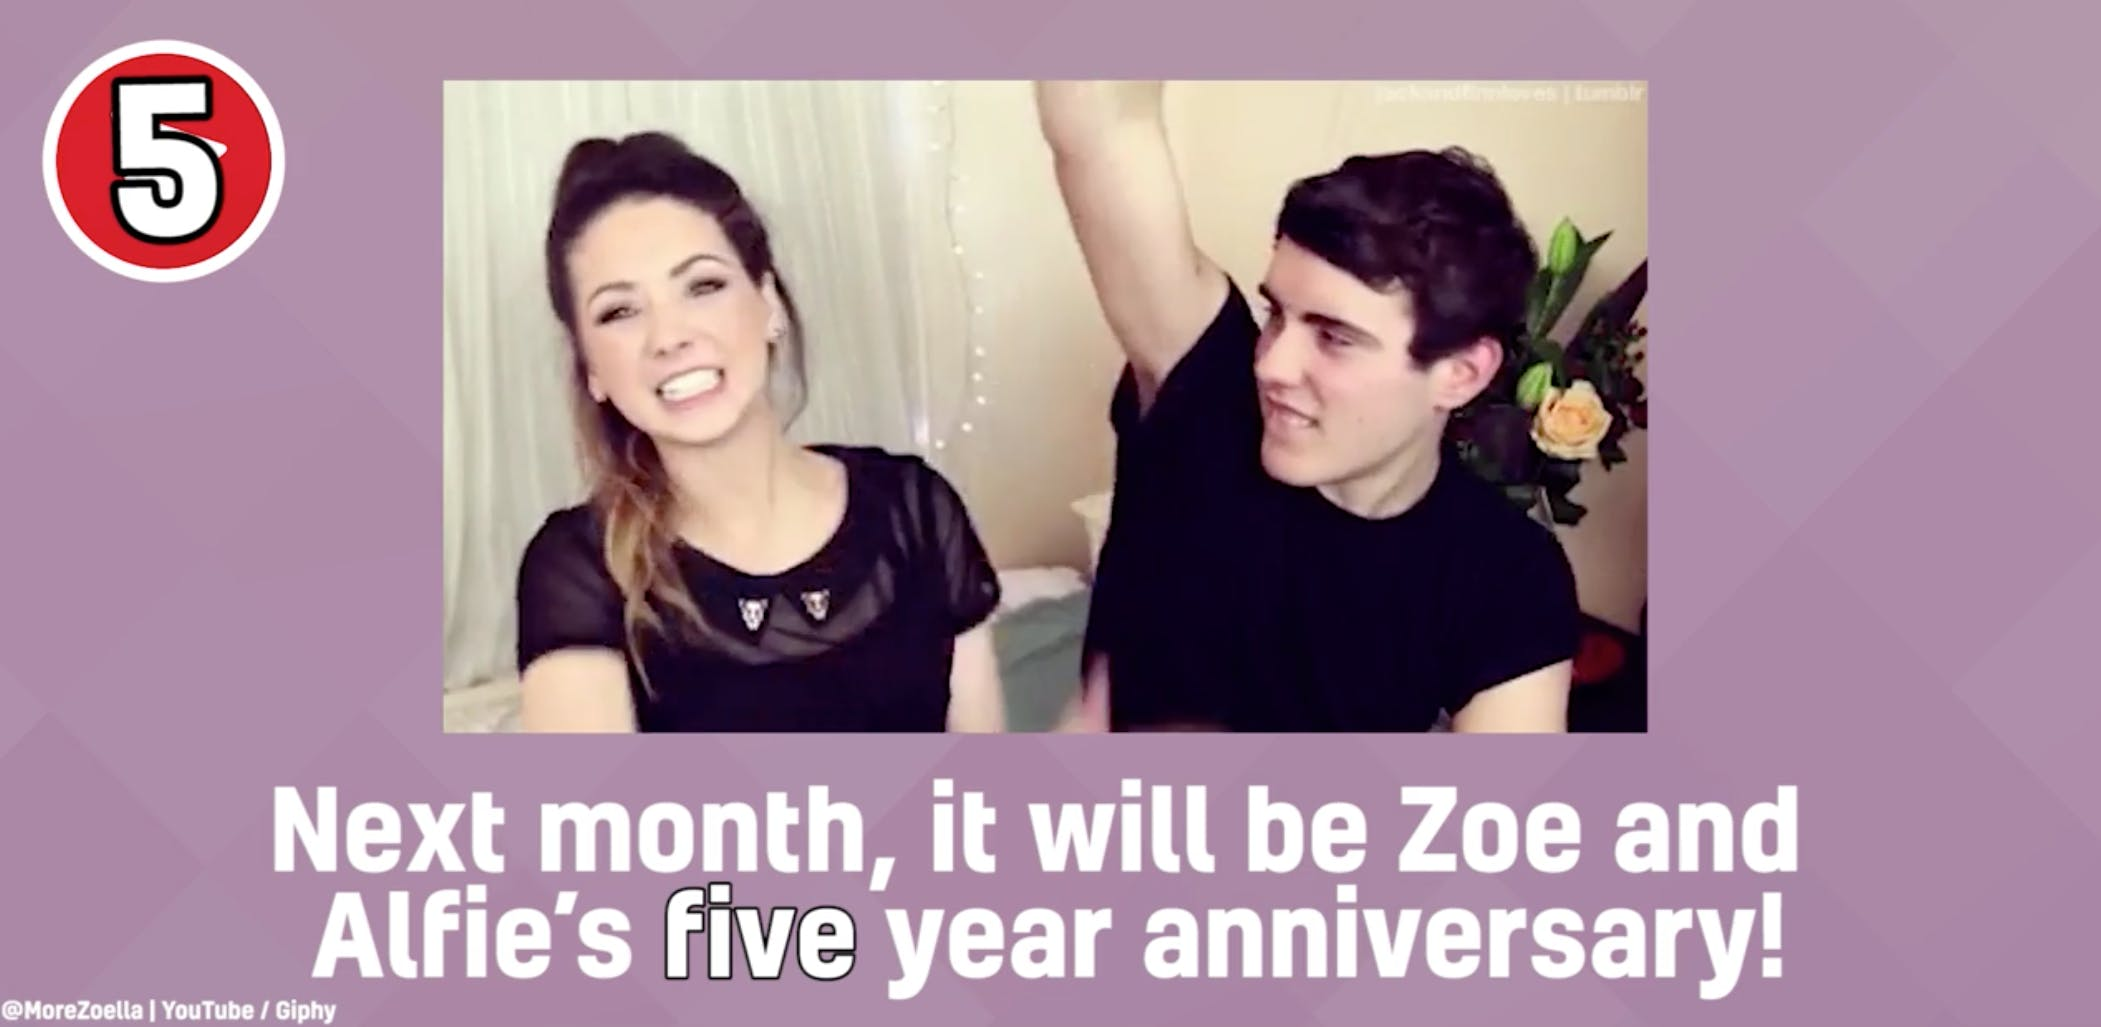 Zoella, YouTube beauty vlogger – and her boyfriend Alfie